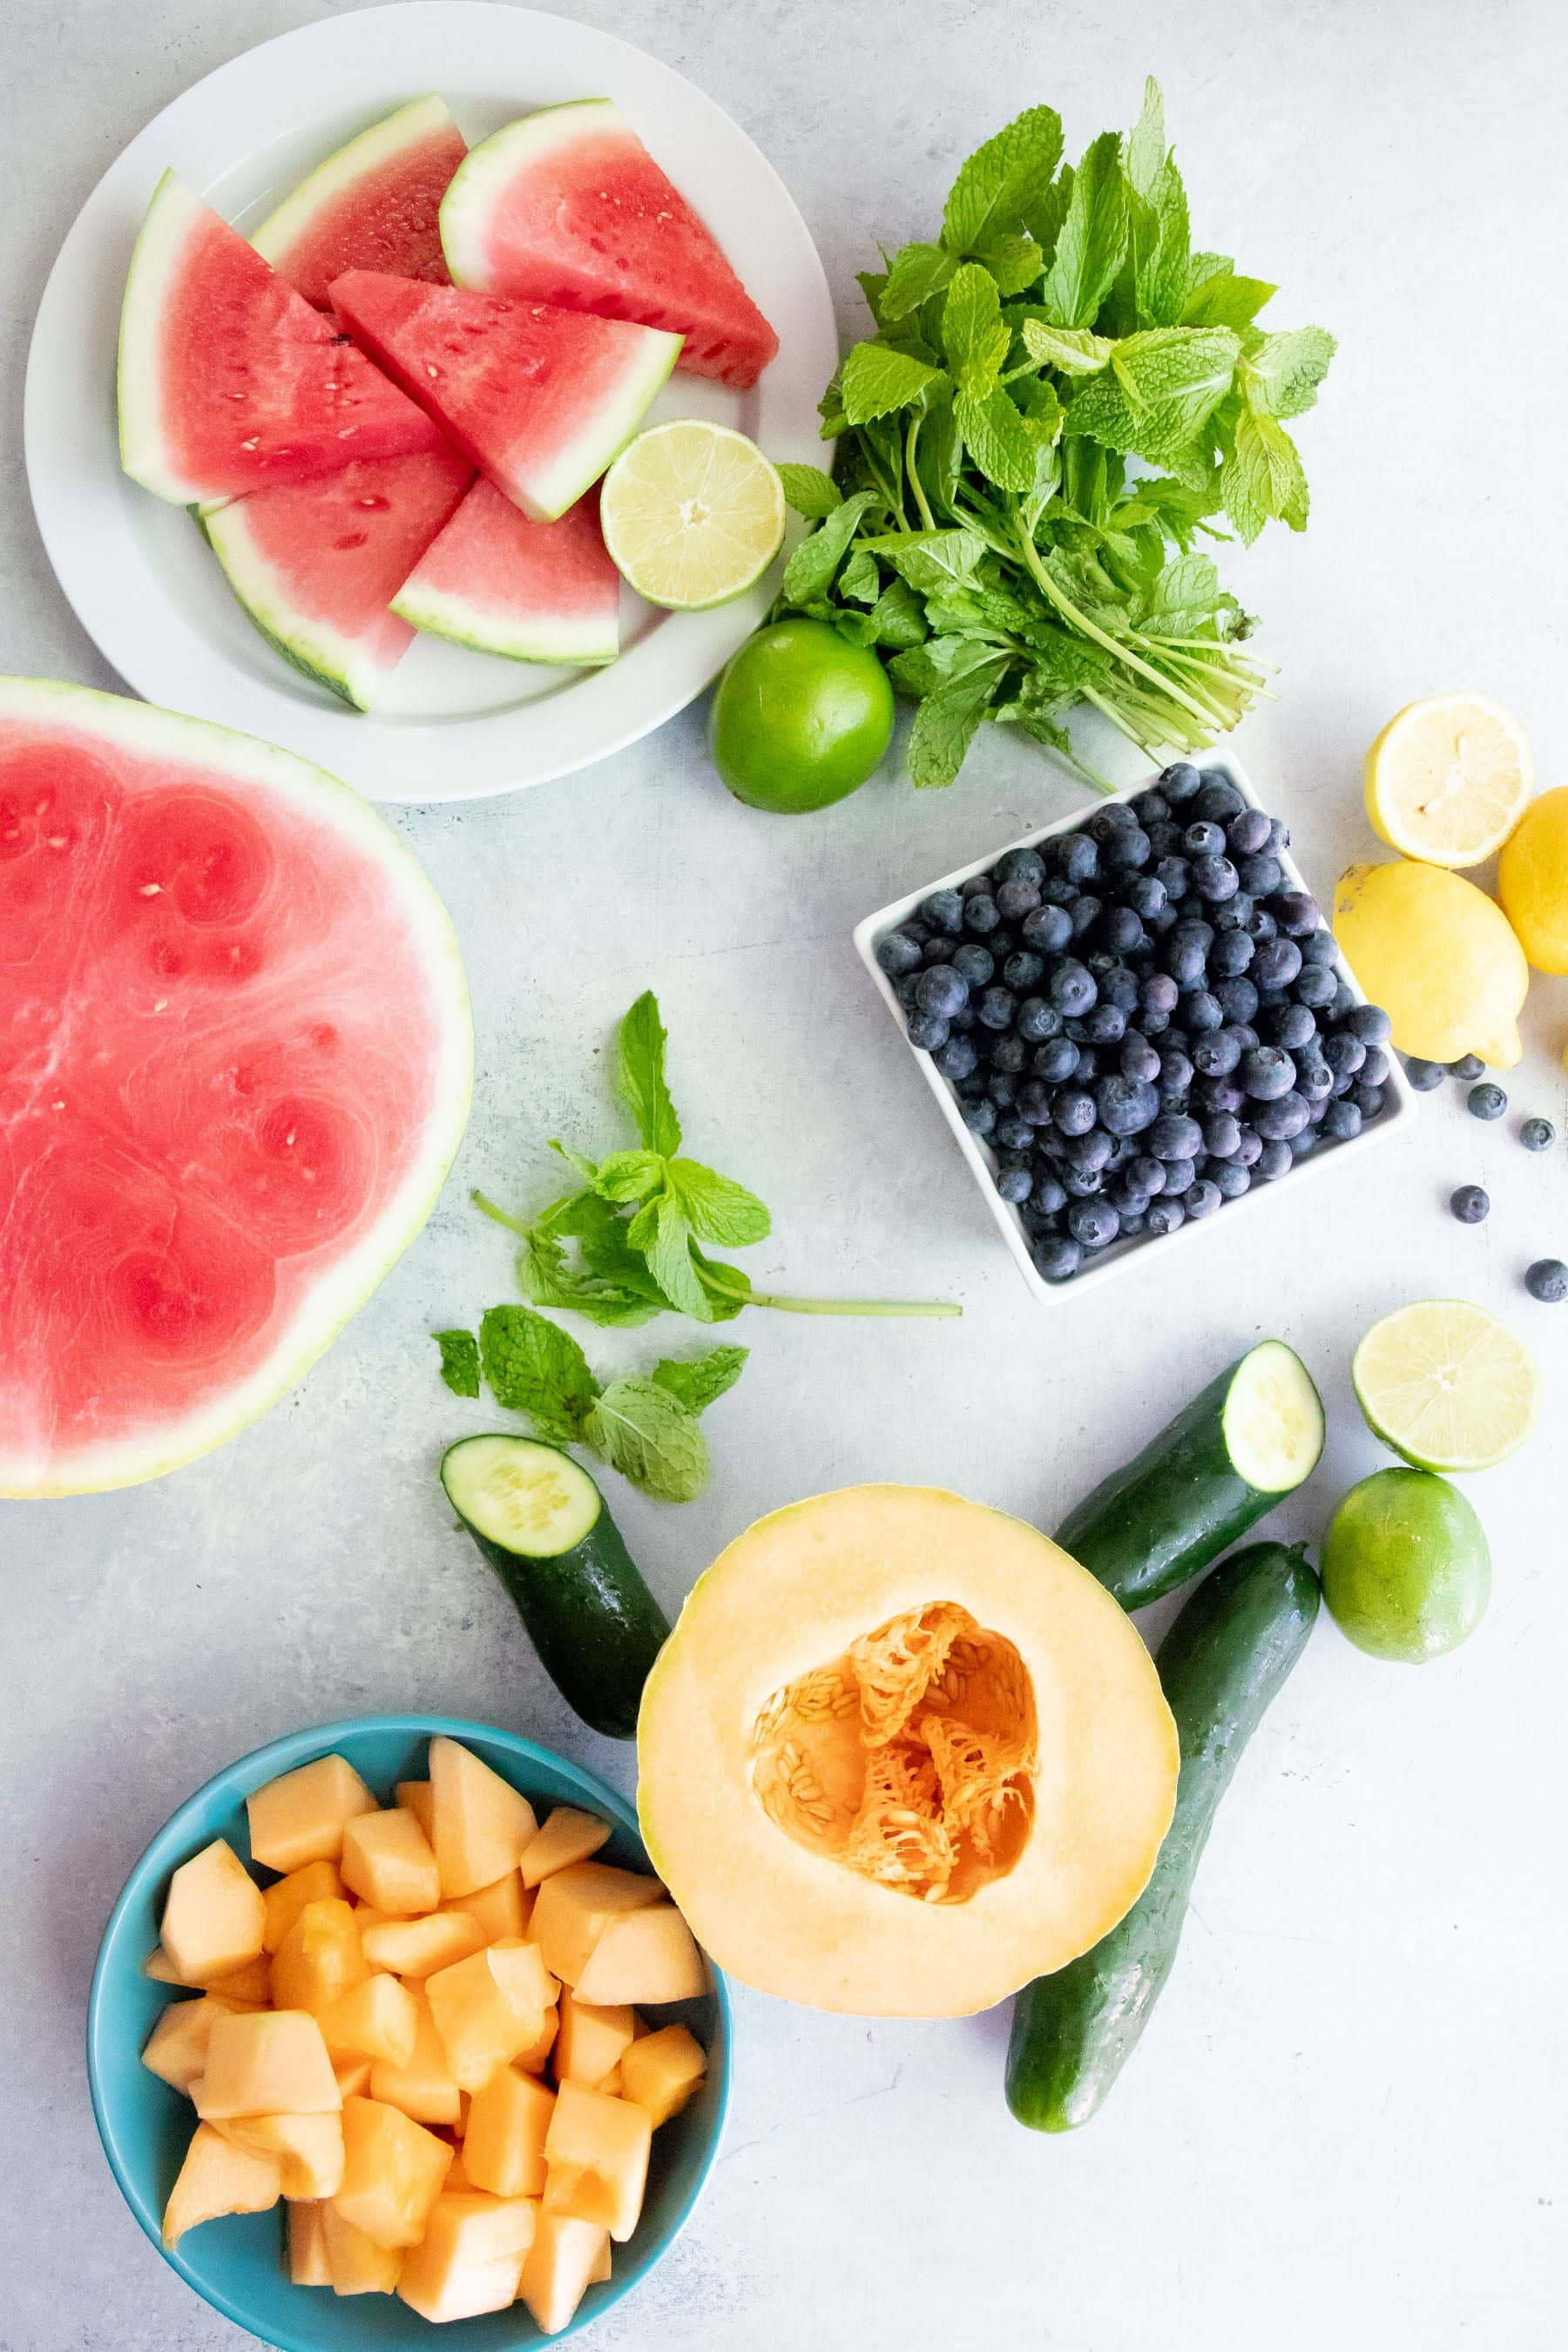 Ingredients for Frozen Fruit Pops arranged on a white background -- watermelon, cantaloupe, cucumber, blueberries, lemons, and limes